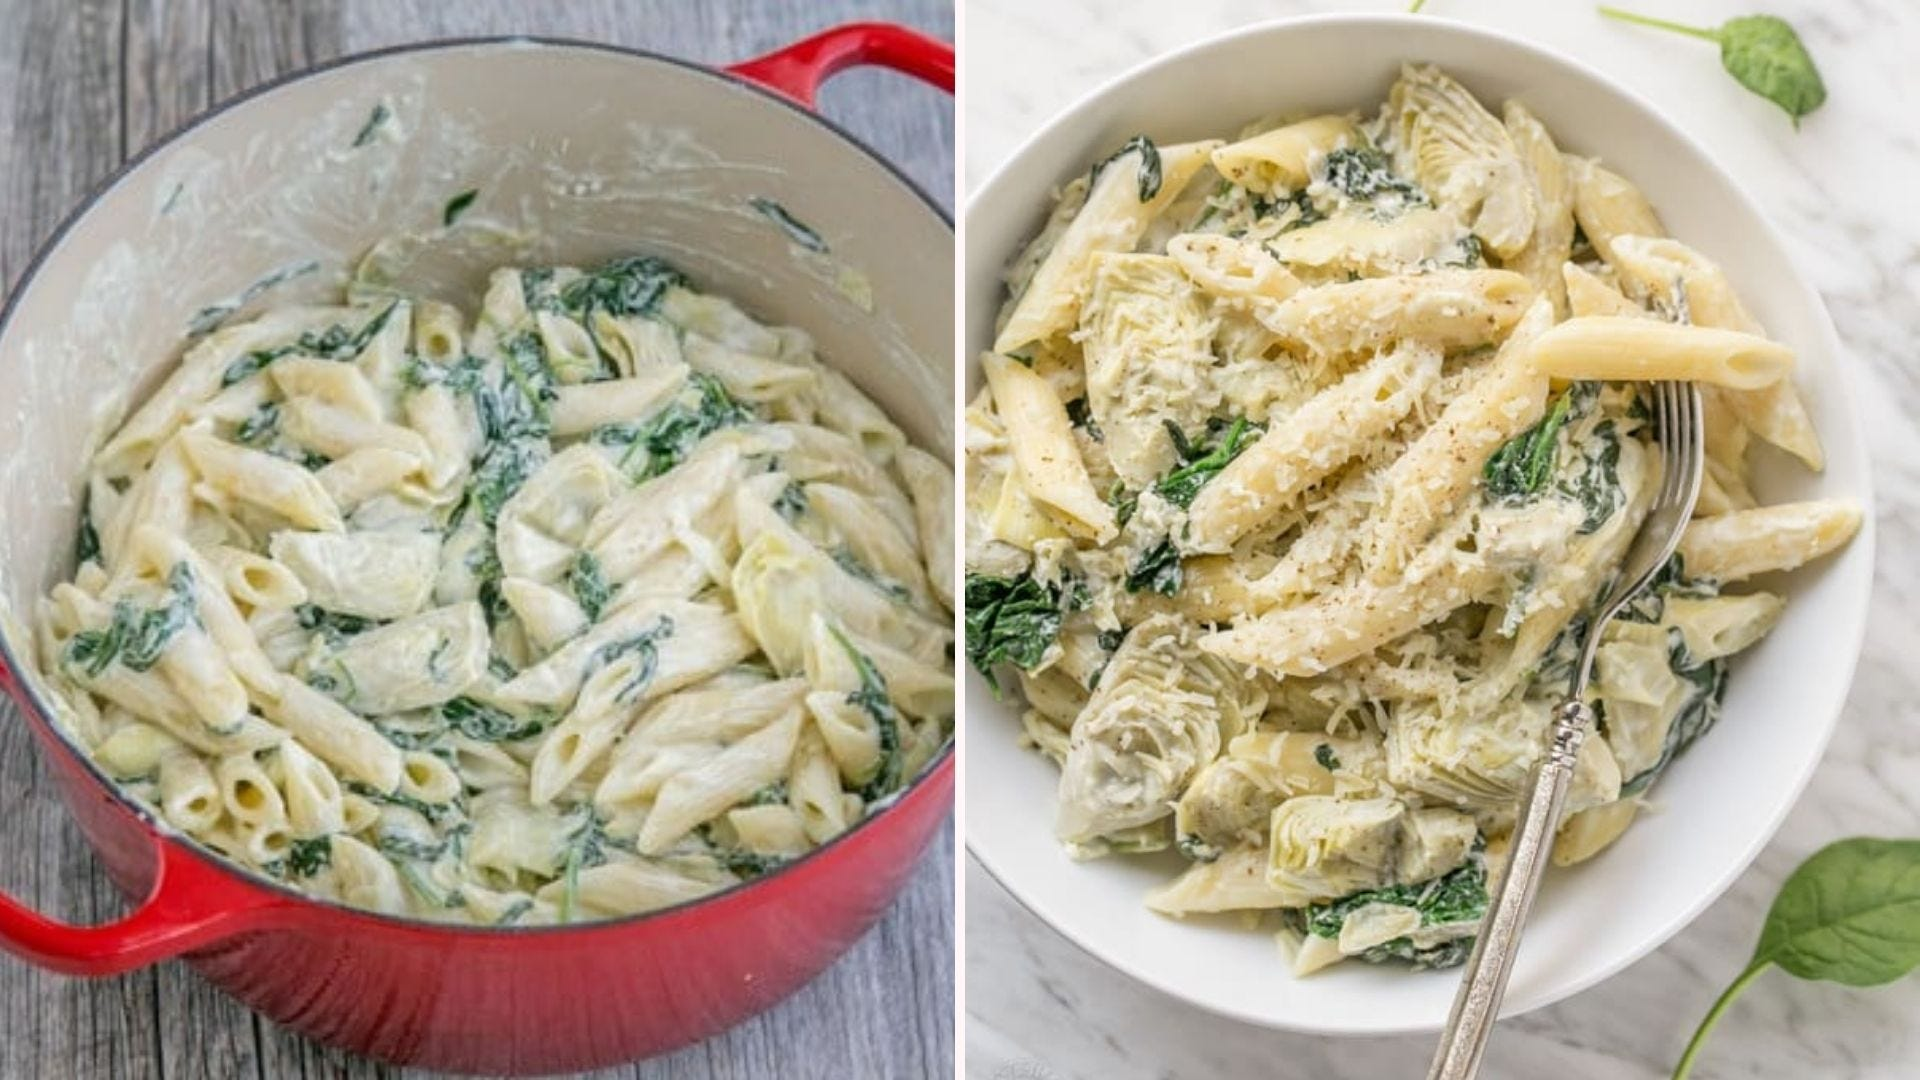 Two images: The left image is of an enameled Dutch oven filled with spinach and artichoke pasta, and the right image is of a bowl of the same pasta, topped with fresh grated parmesan cheese.